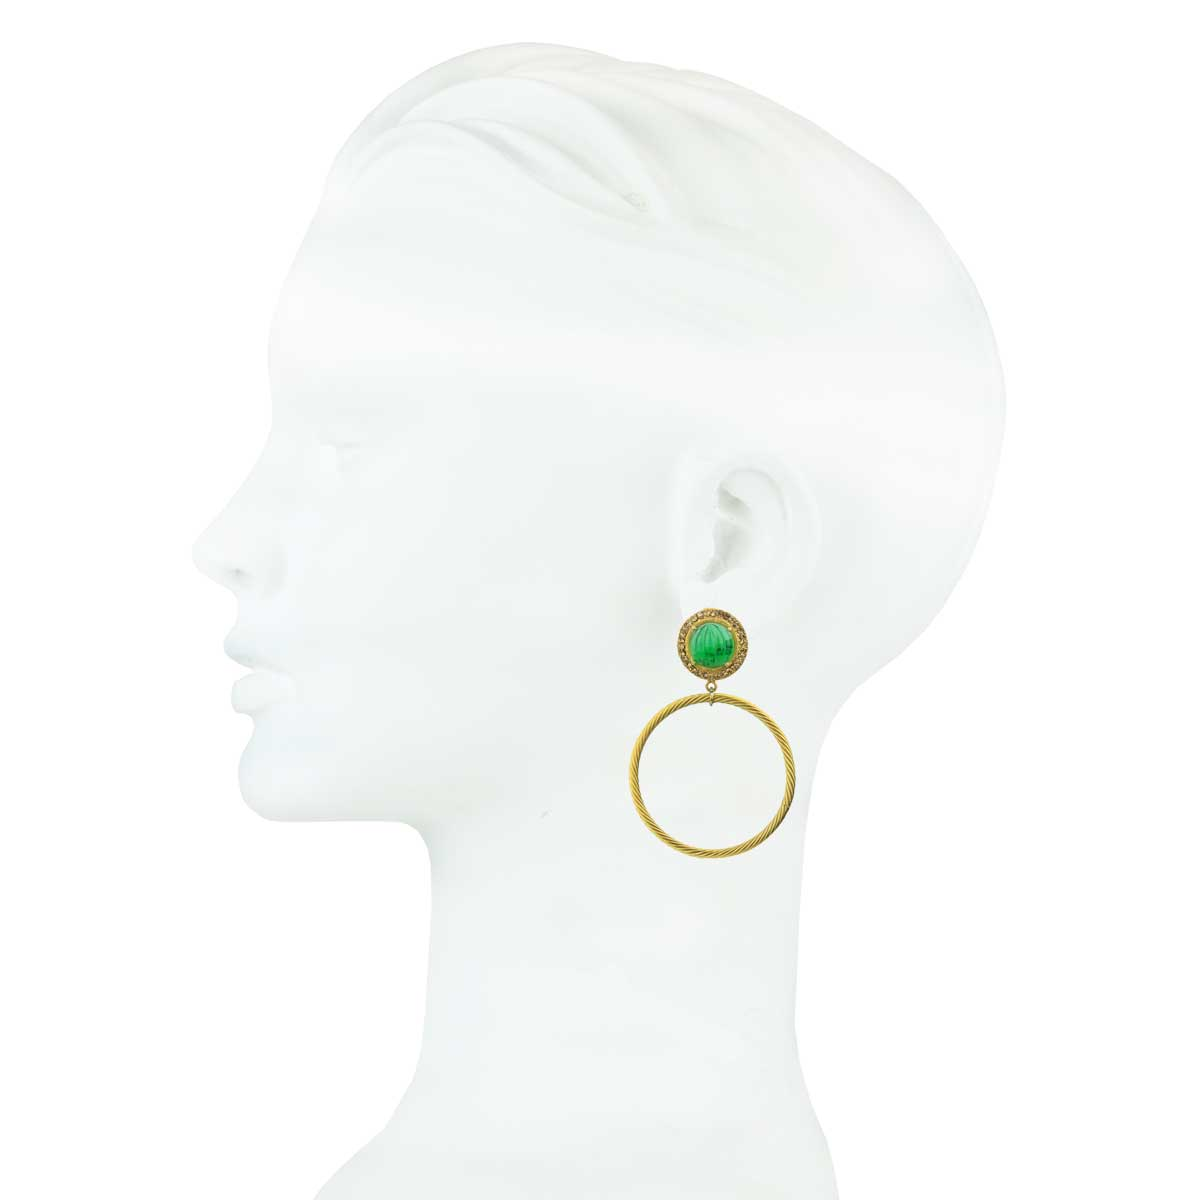 Gina Green Rosettes and Gold plated Metal Hoops